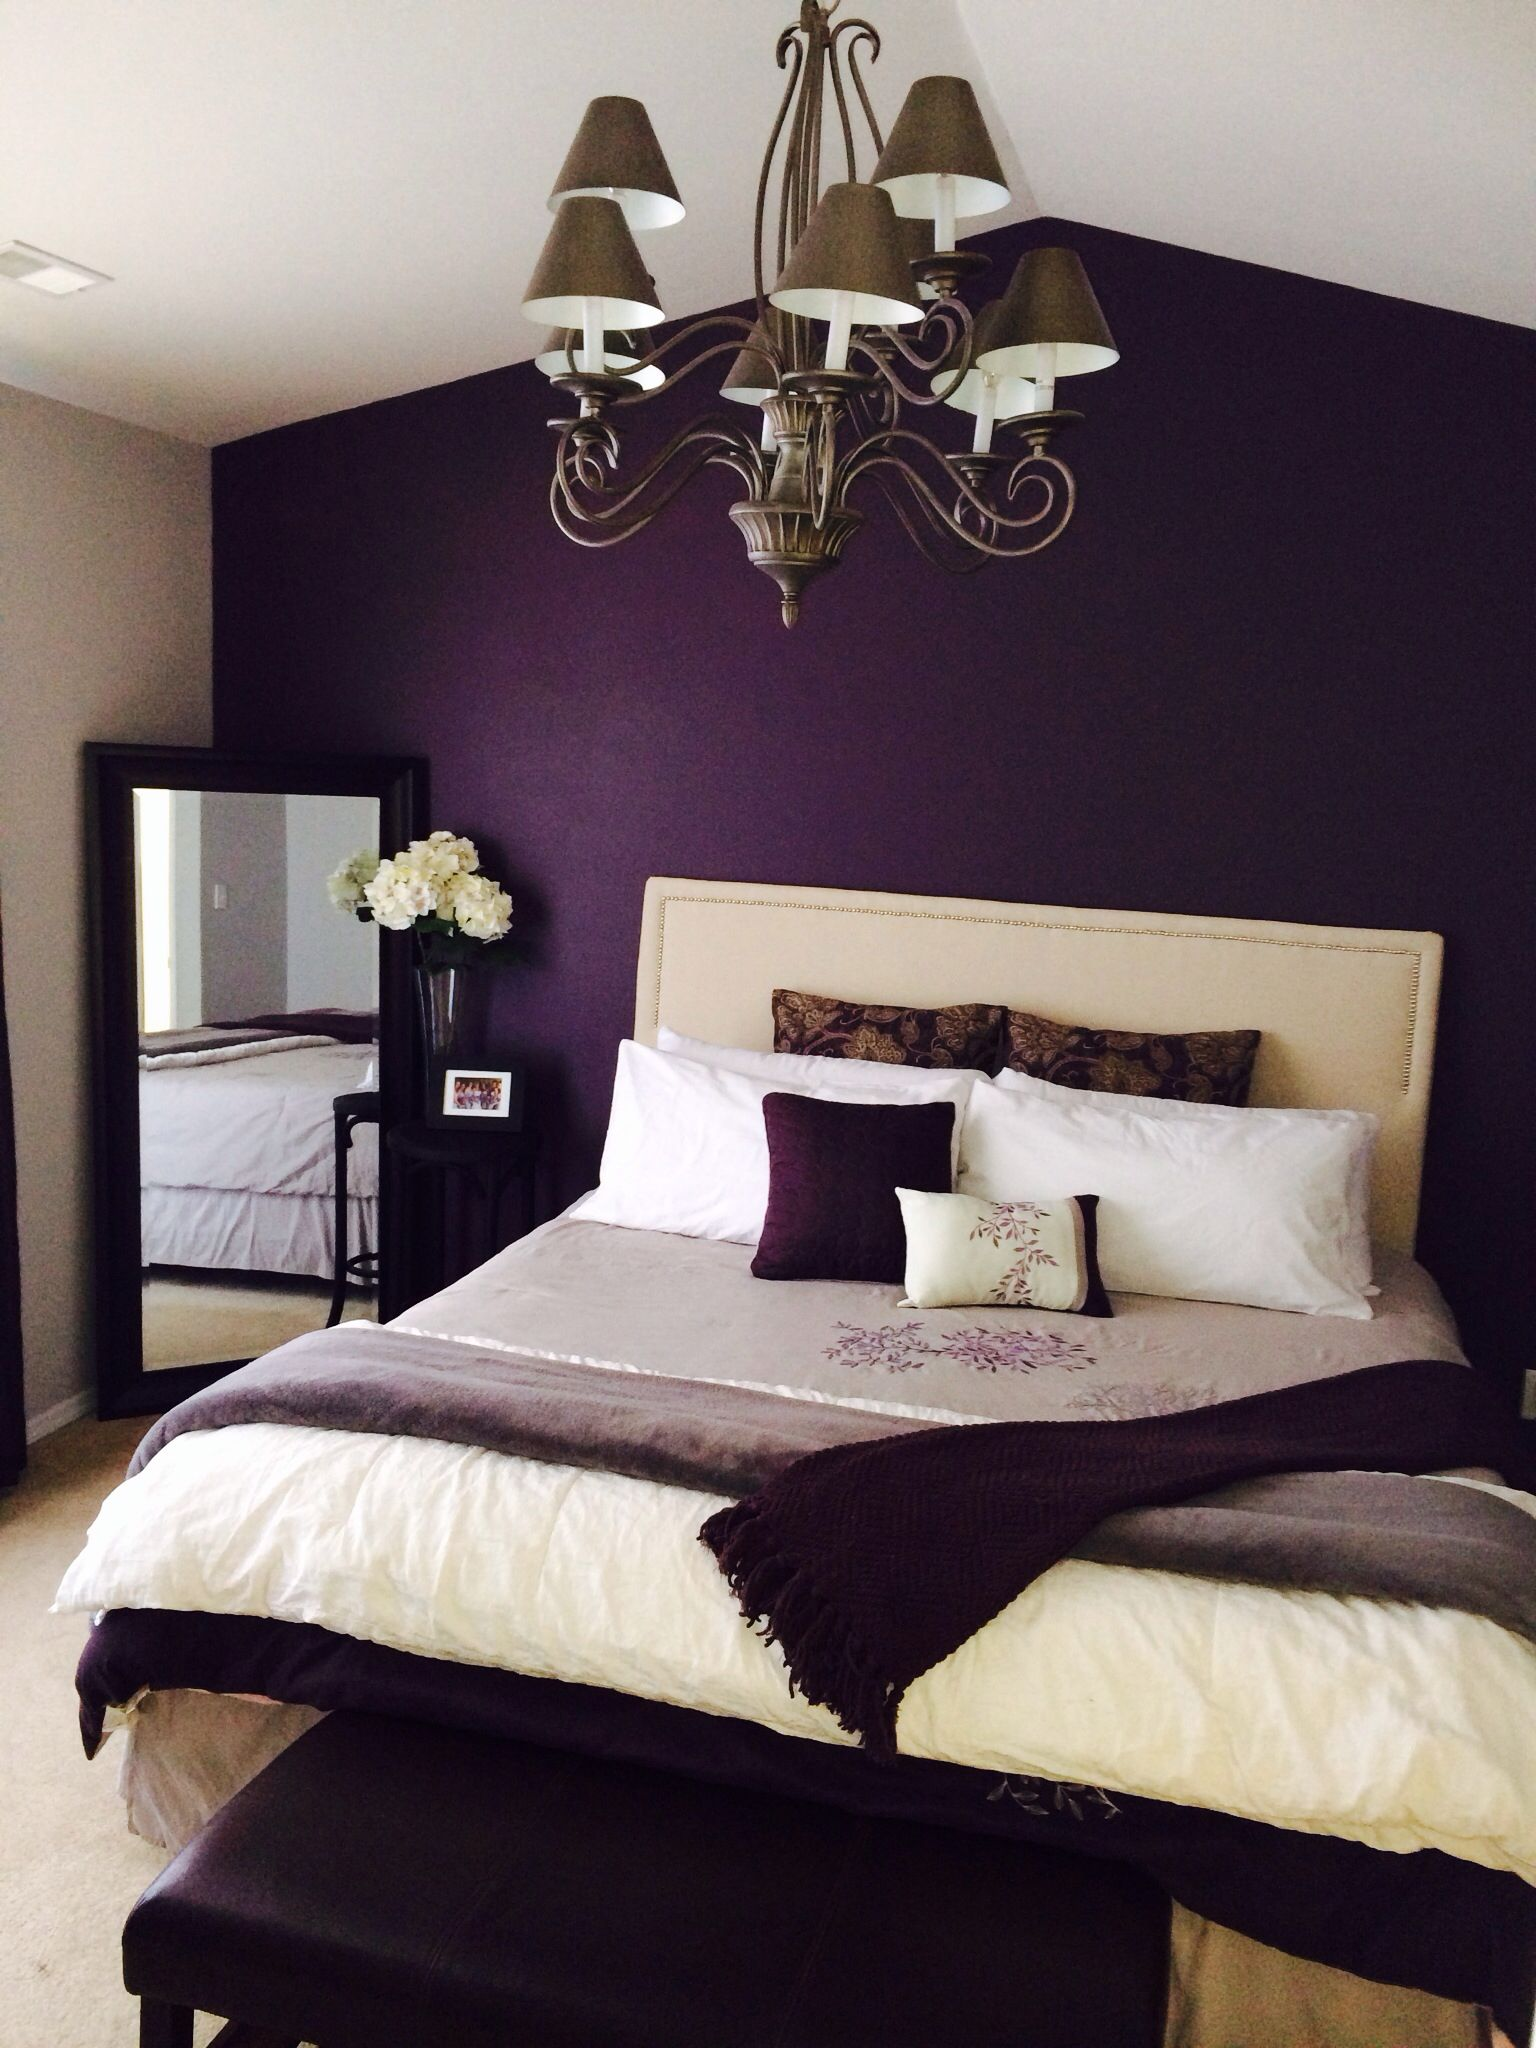 Dark purple bedroom colors - Latest 30 Romantic Bedroom Ideas To Make The Love Happen